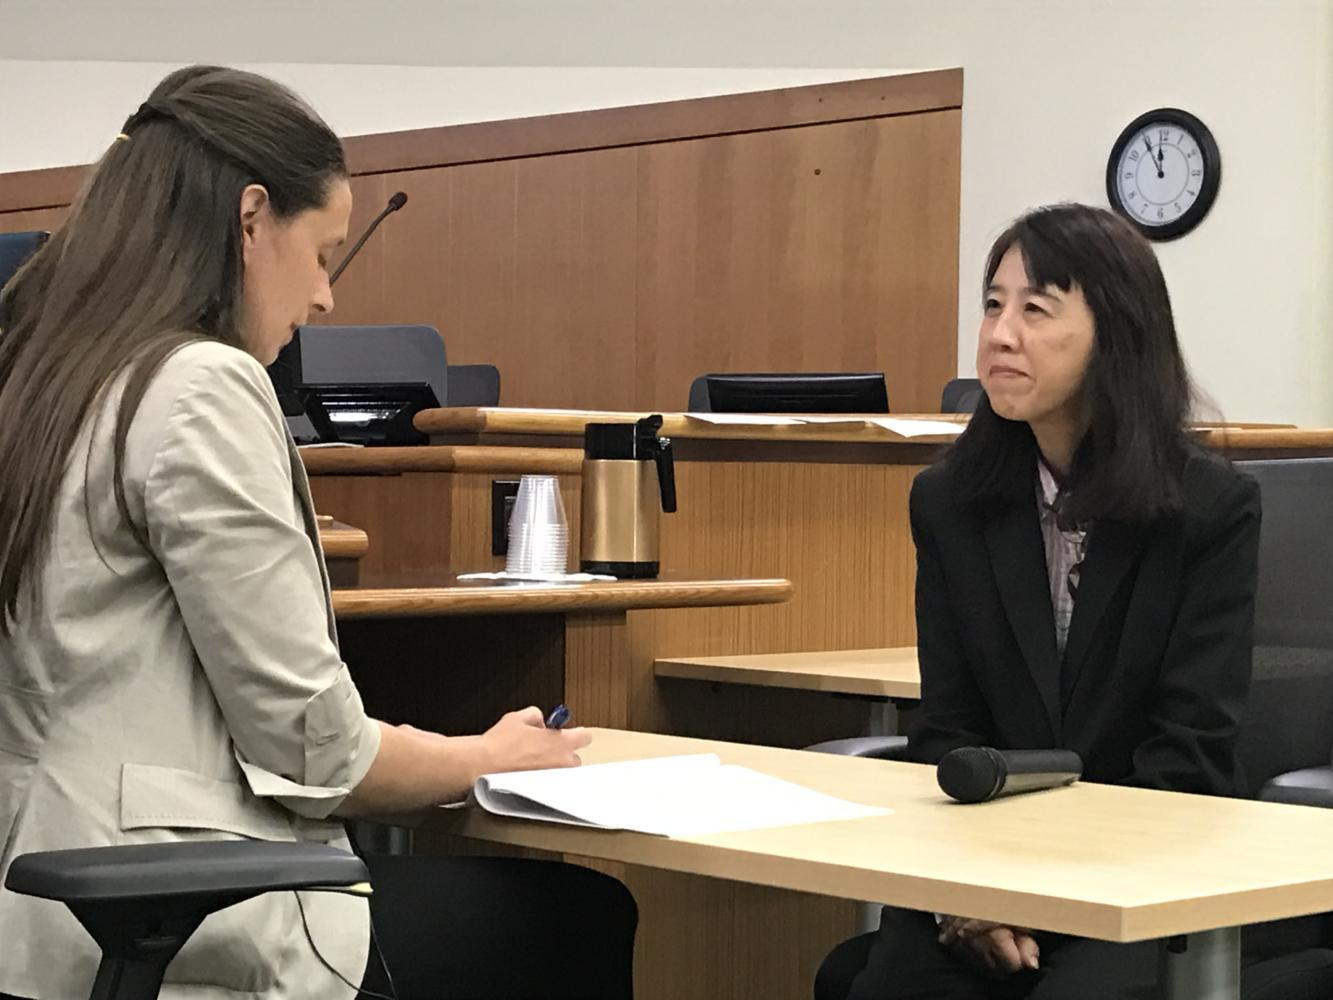 +Susan+Siao+and+Anne+Bloomberg%2C+from+the+USCIS%2C+perform+a+mock+interview+to+help+audience+members+better+understand+the+citizenship+process.